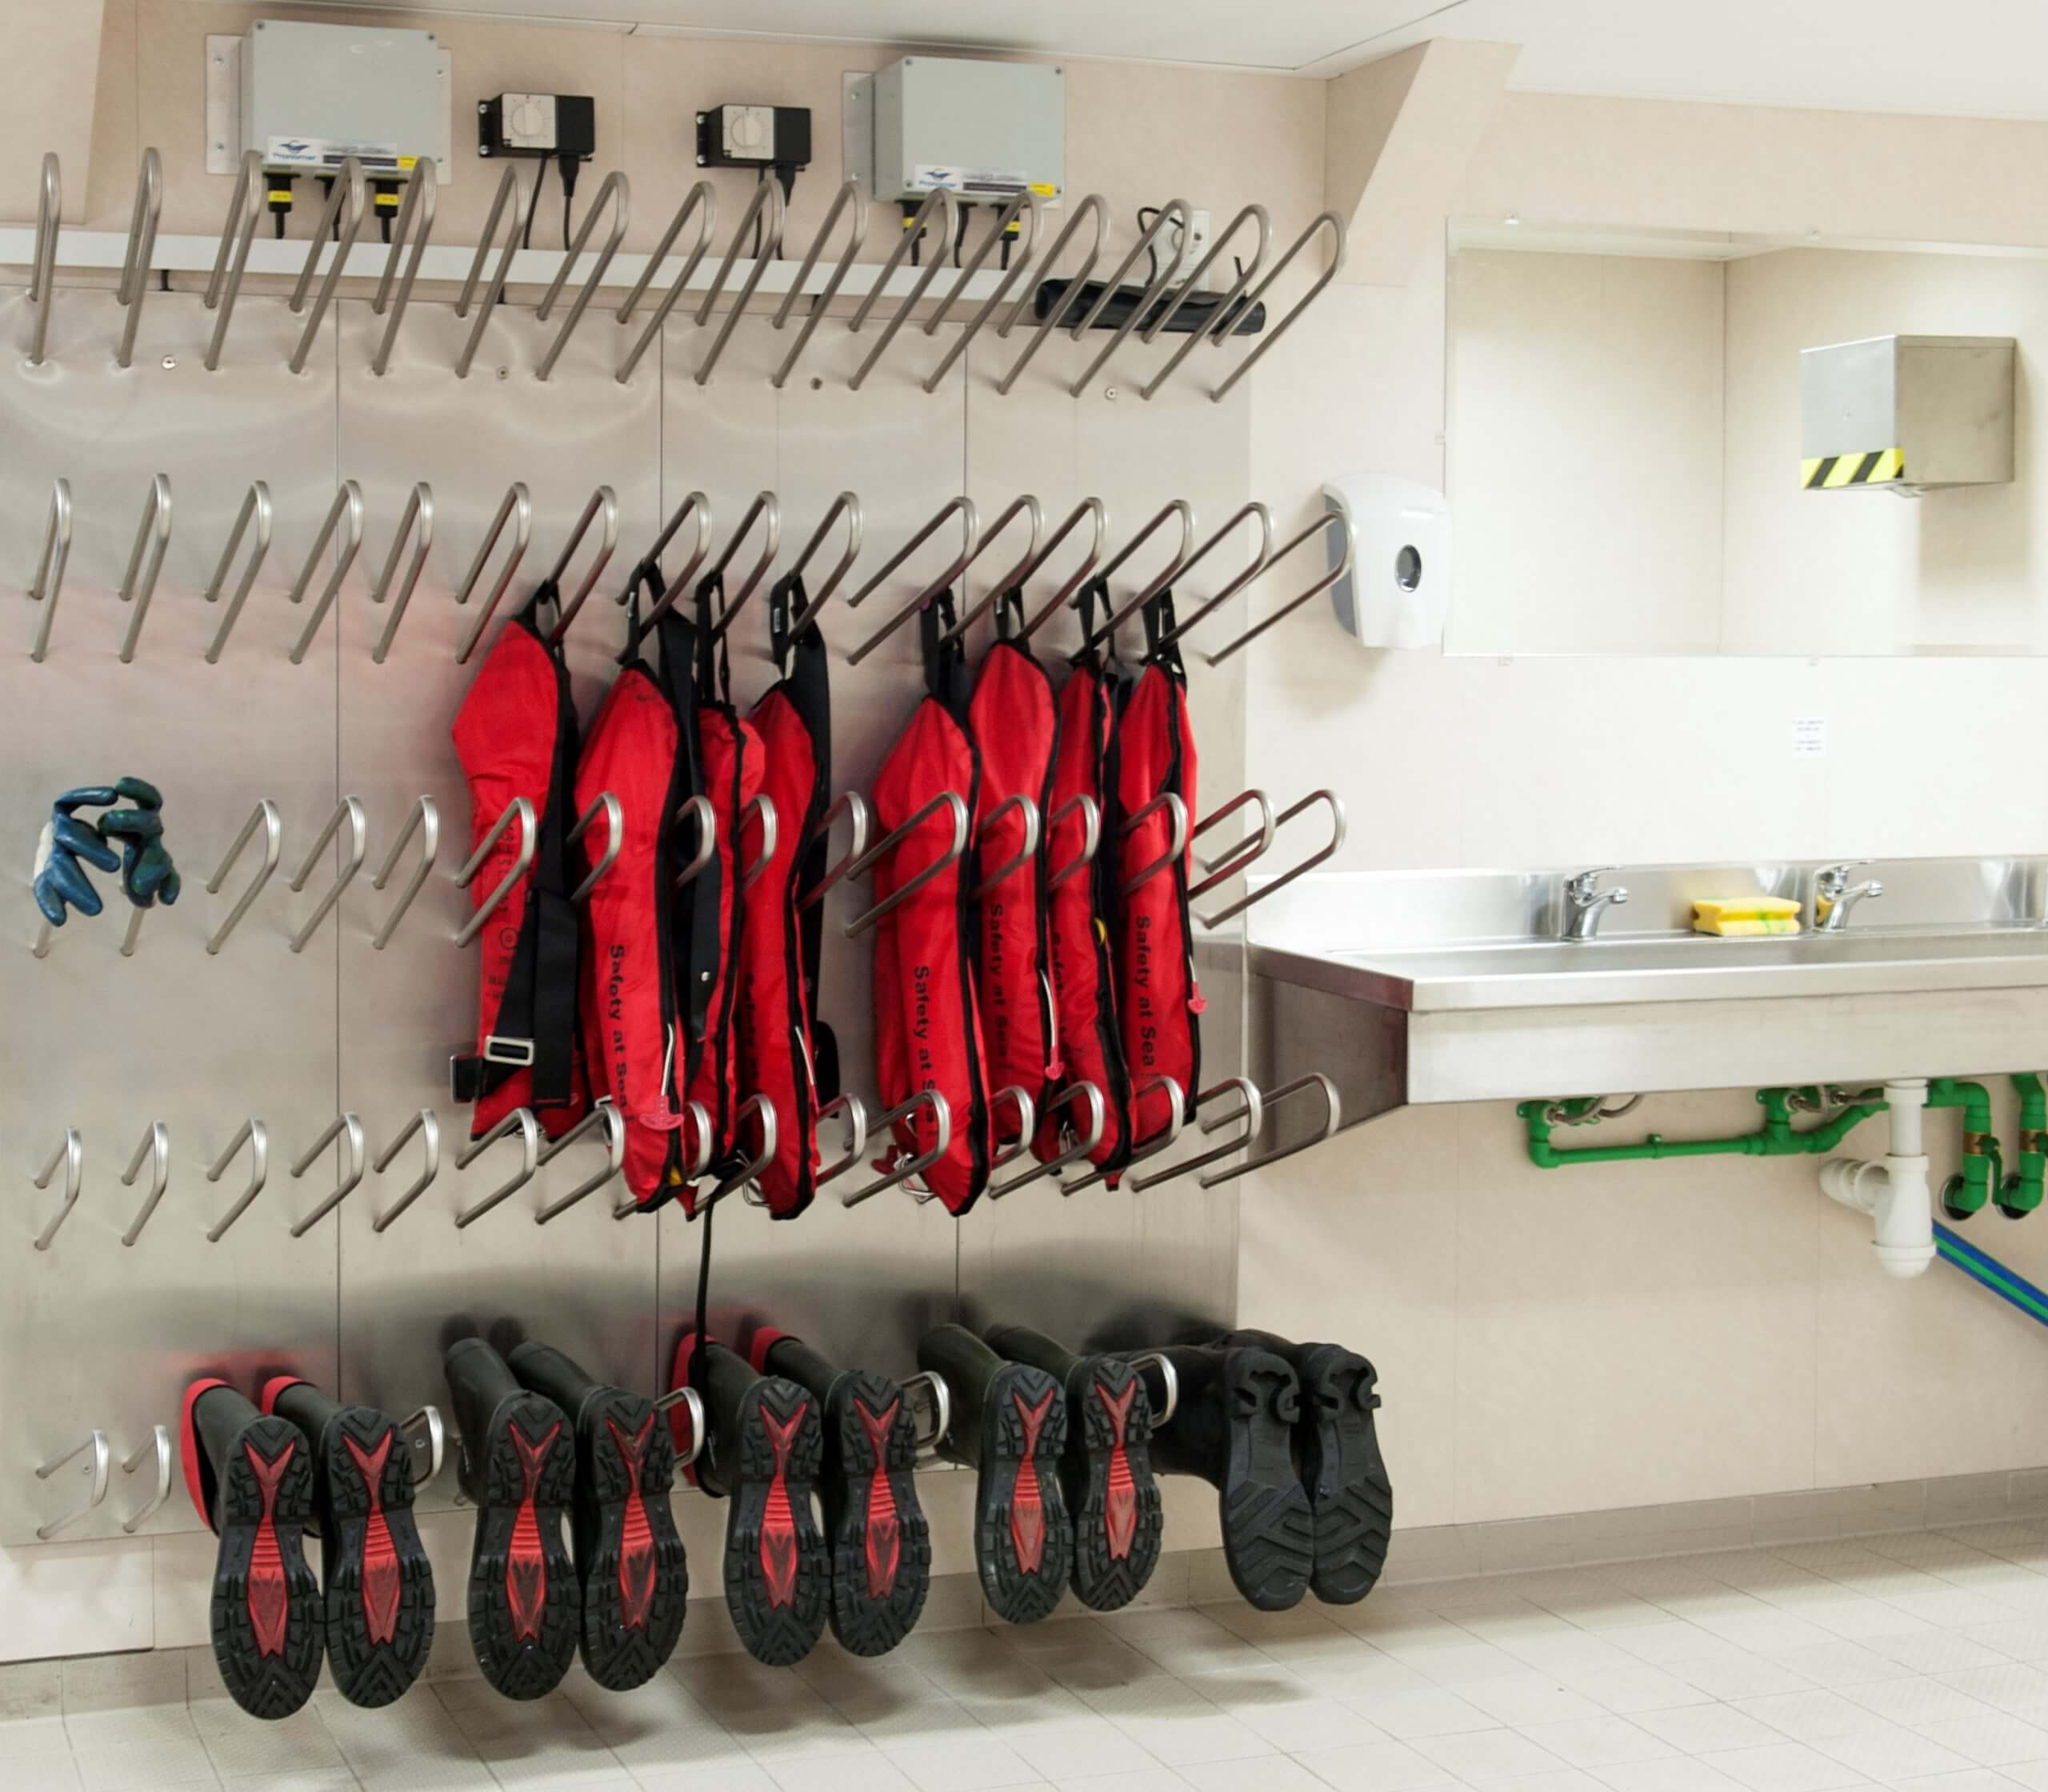 offshore drying system for life jackets, boots and gloves